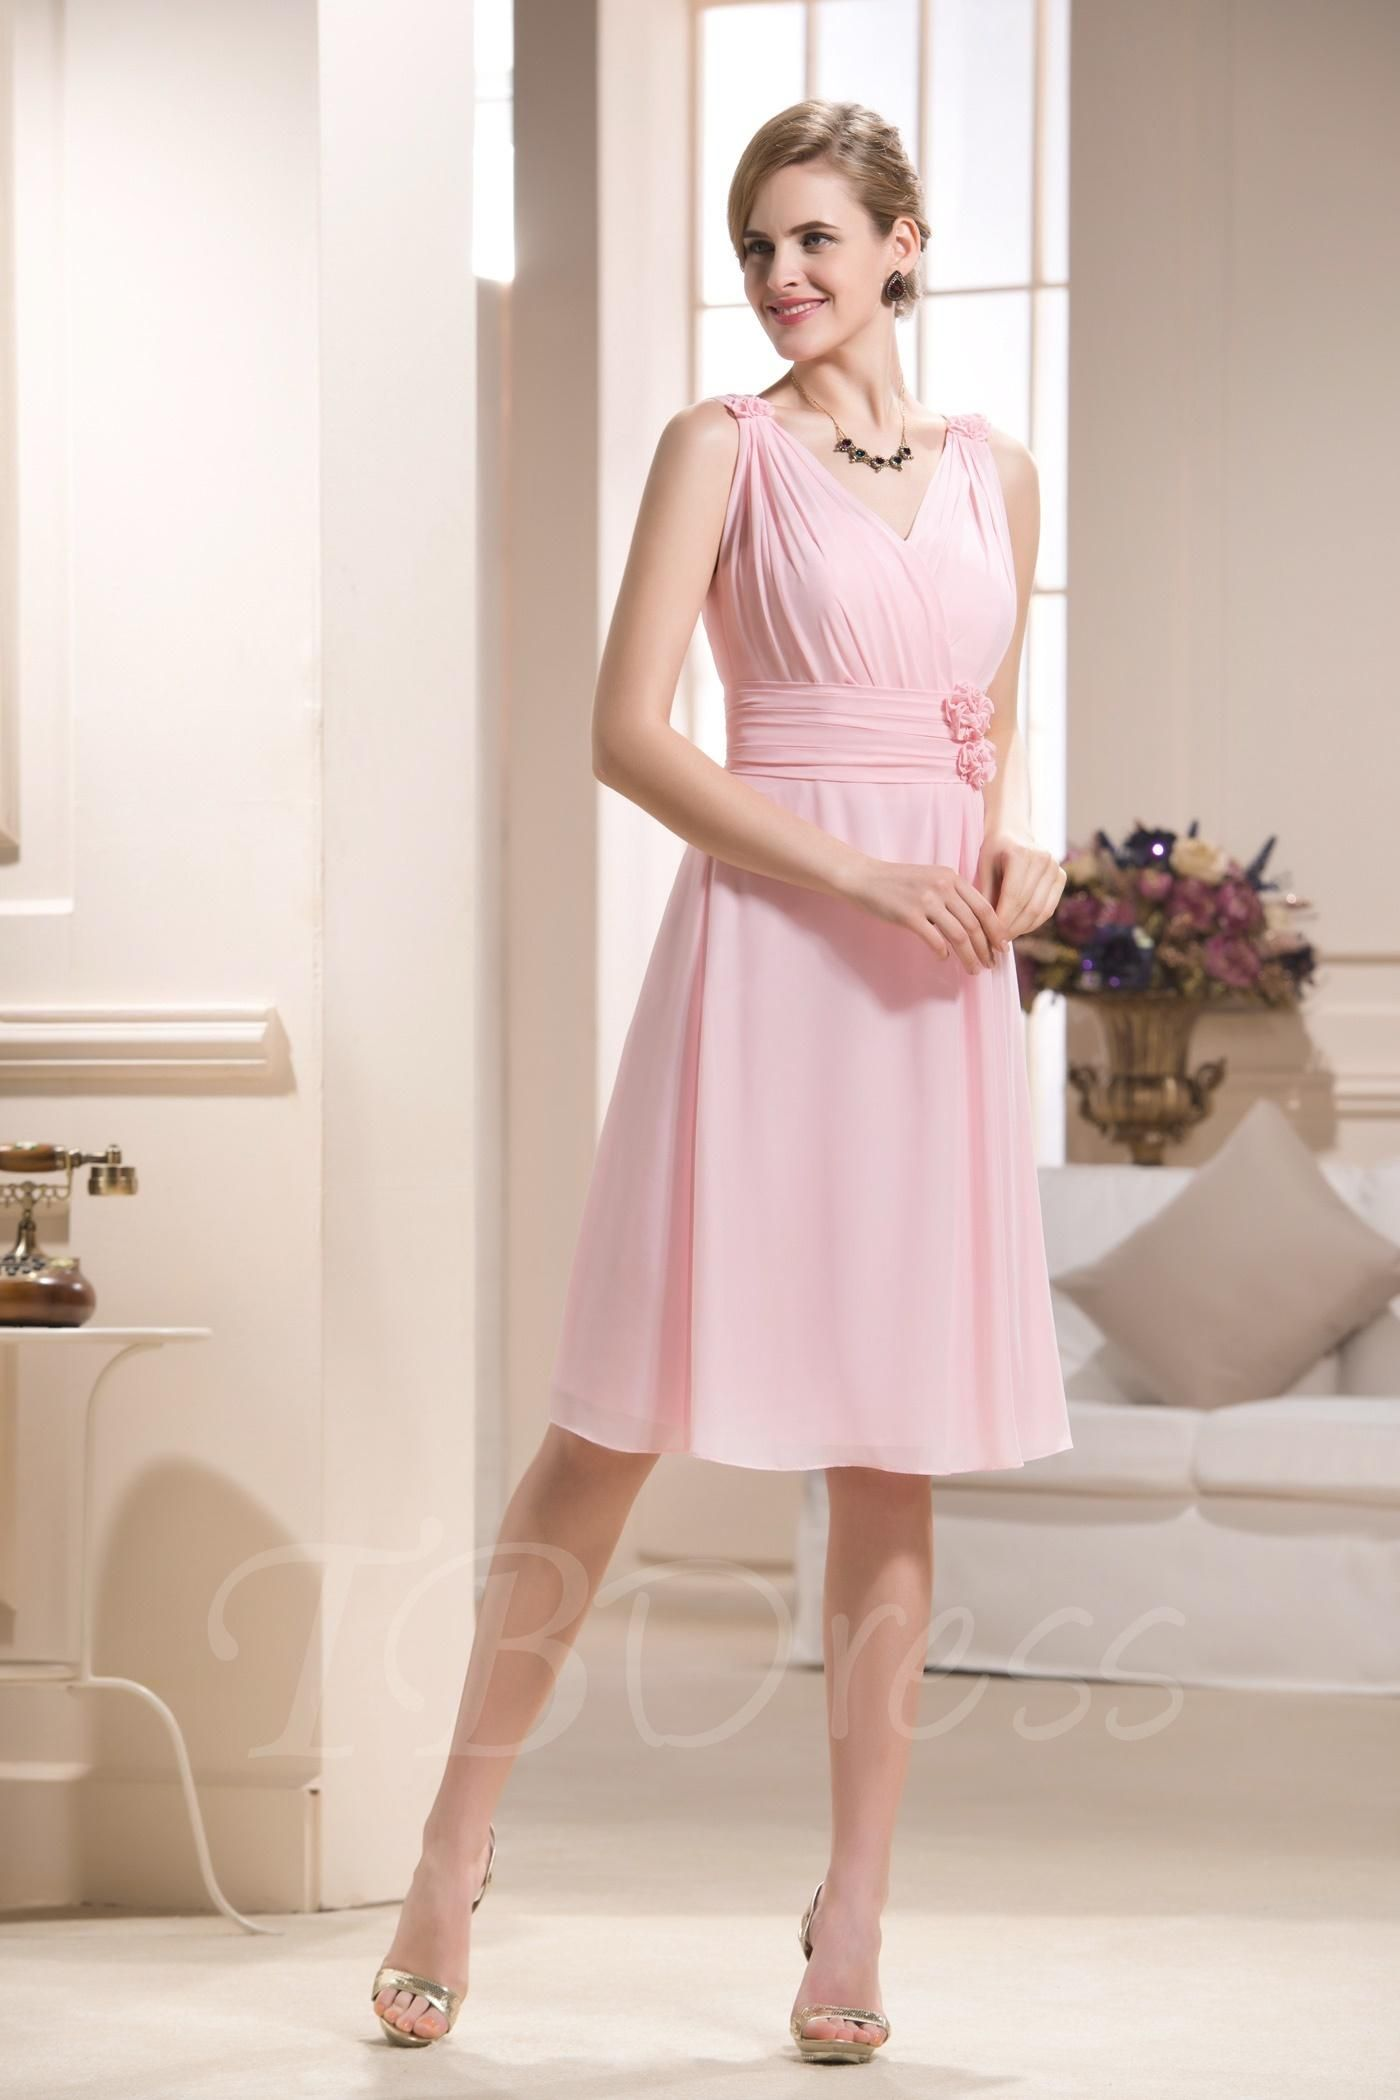 Tbdress tbdress pleats vneck kneelength bridesmaid dress